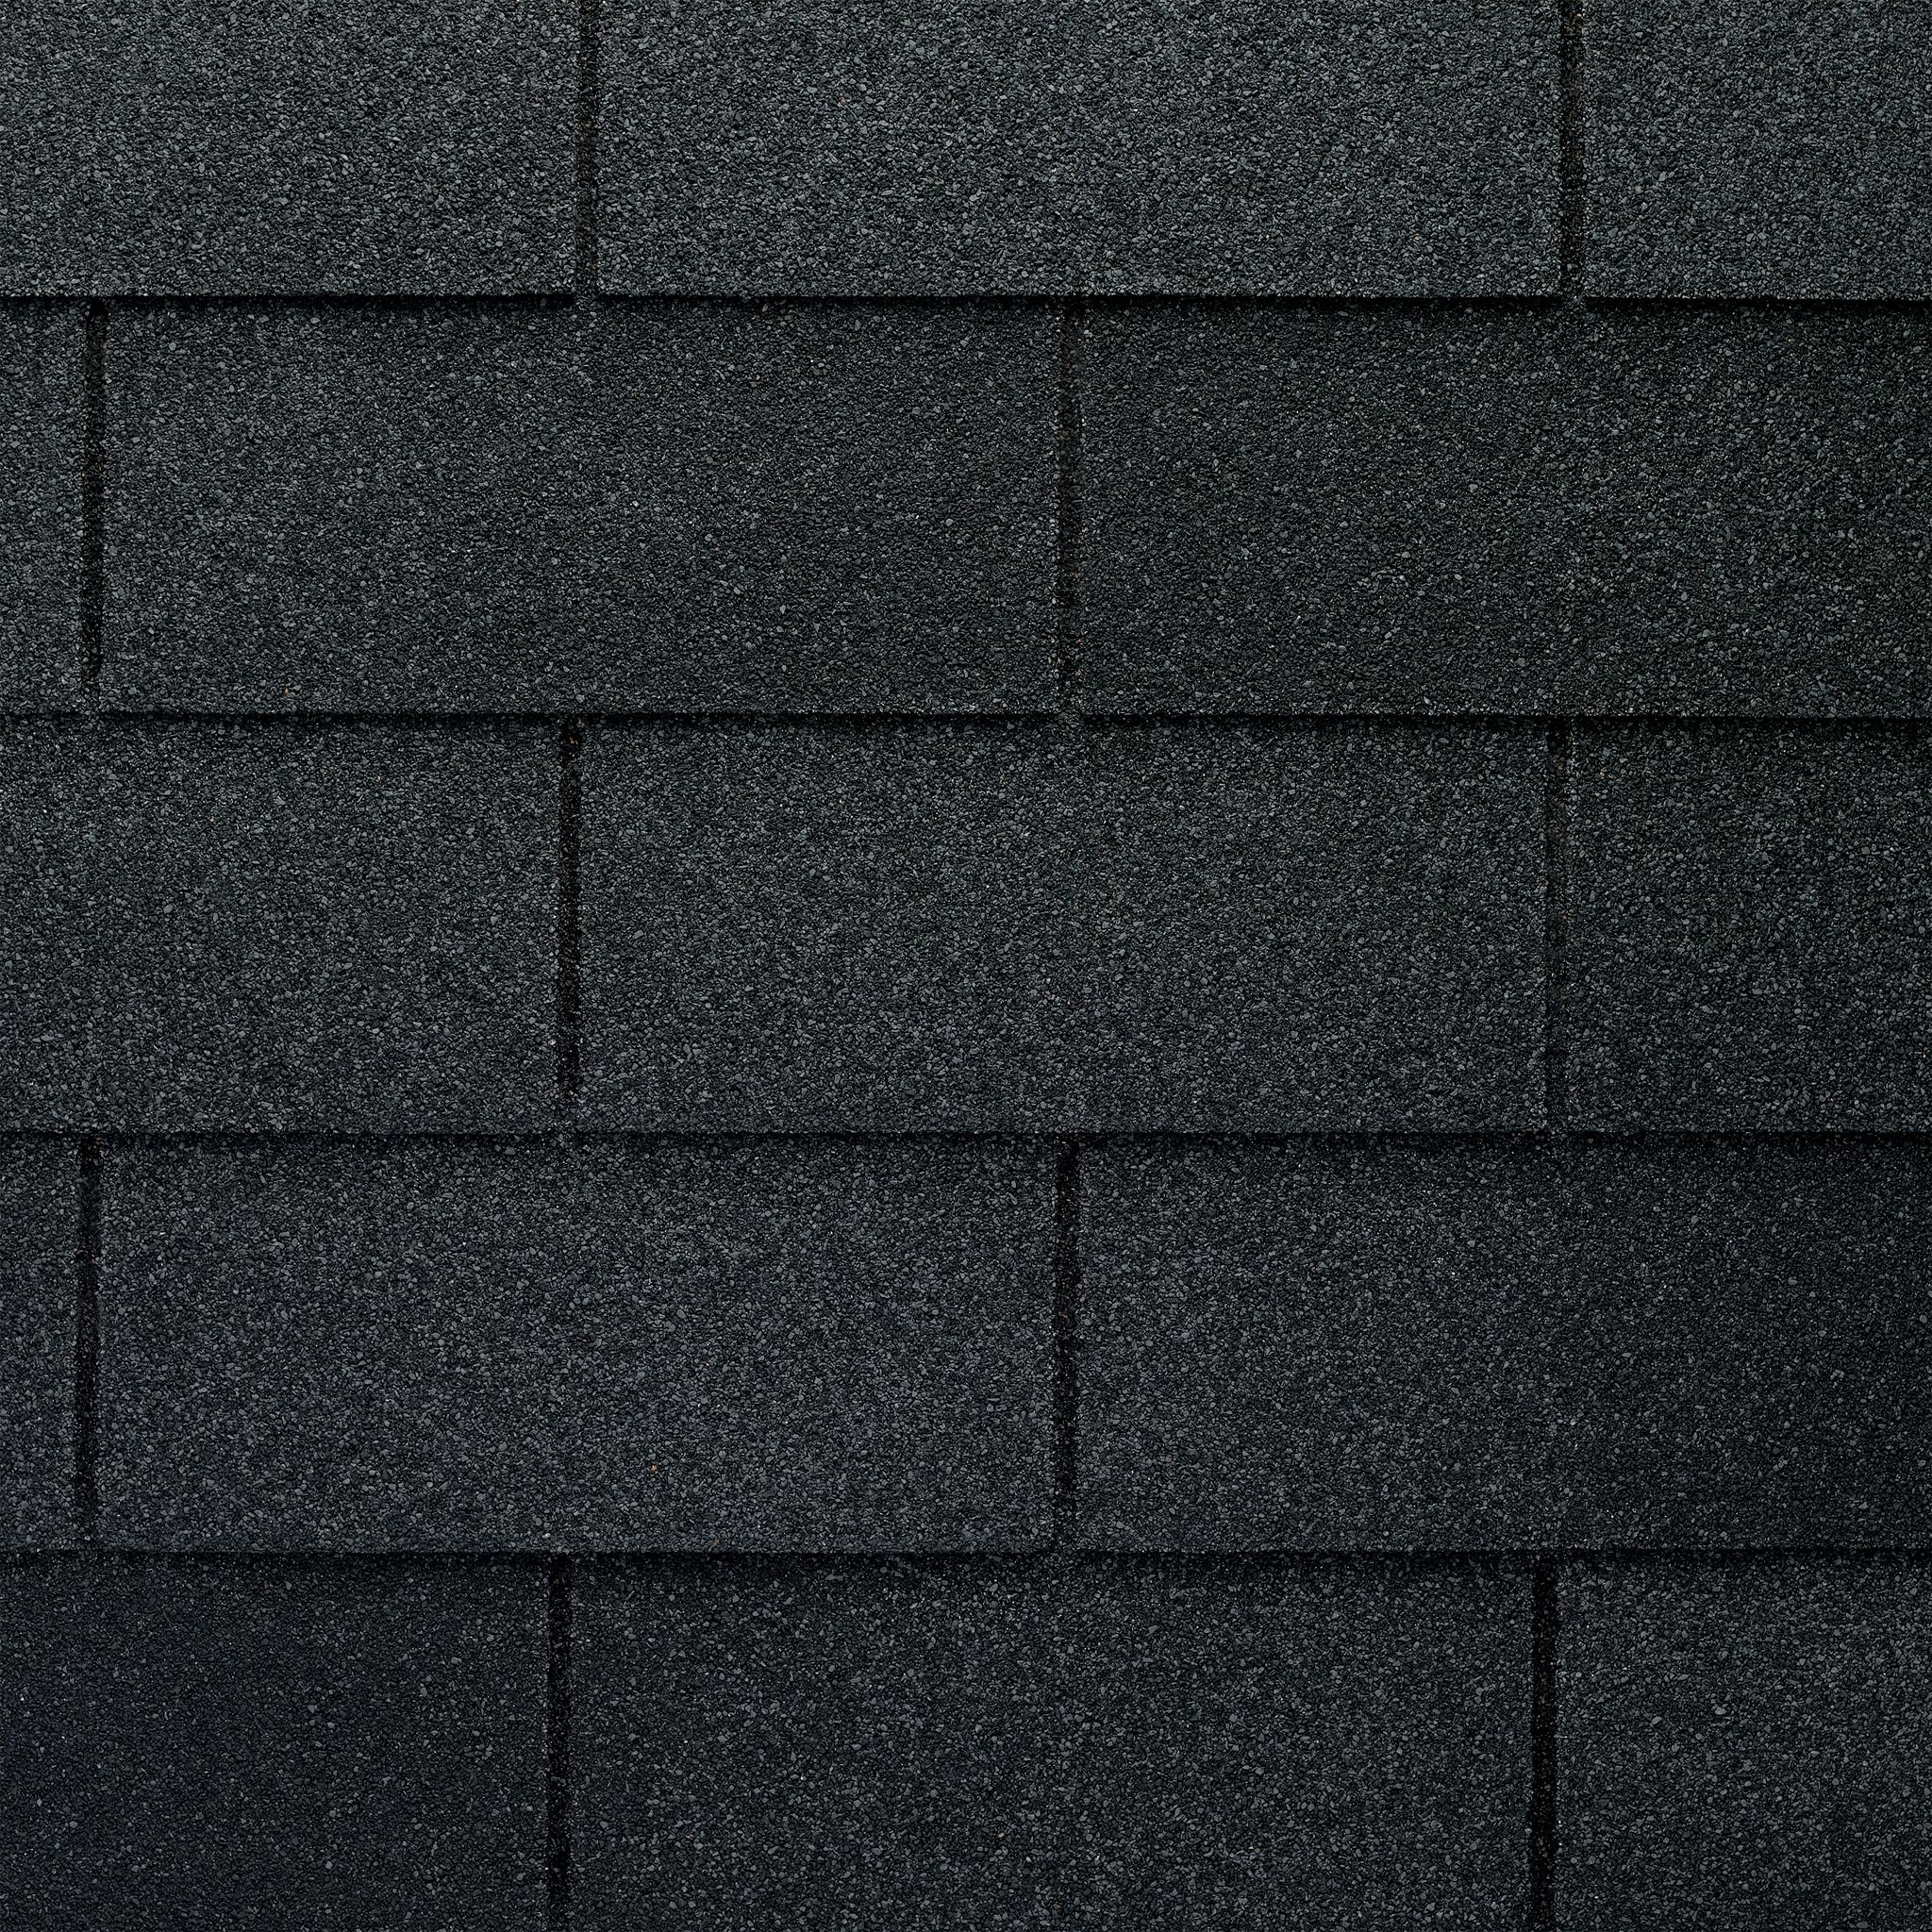 Best Gaf Roof Shingles Color Charcoal Roofing Shingles 640 x 480